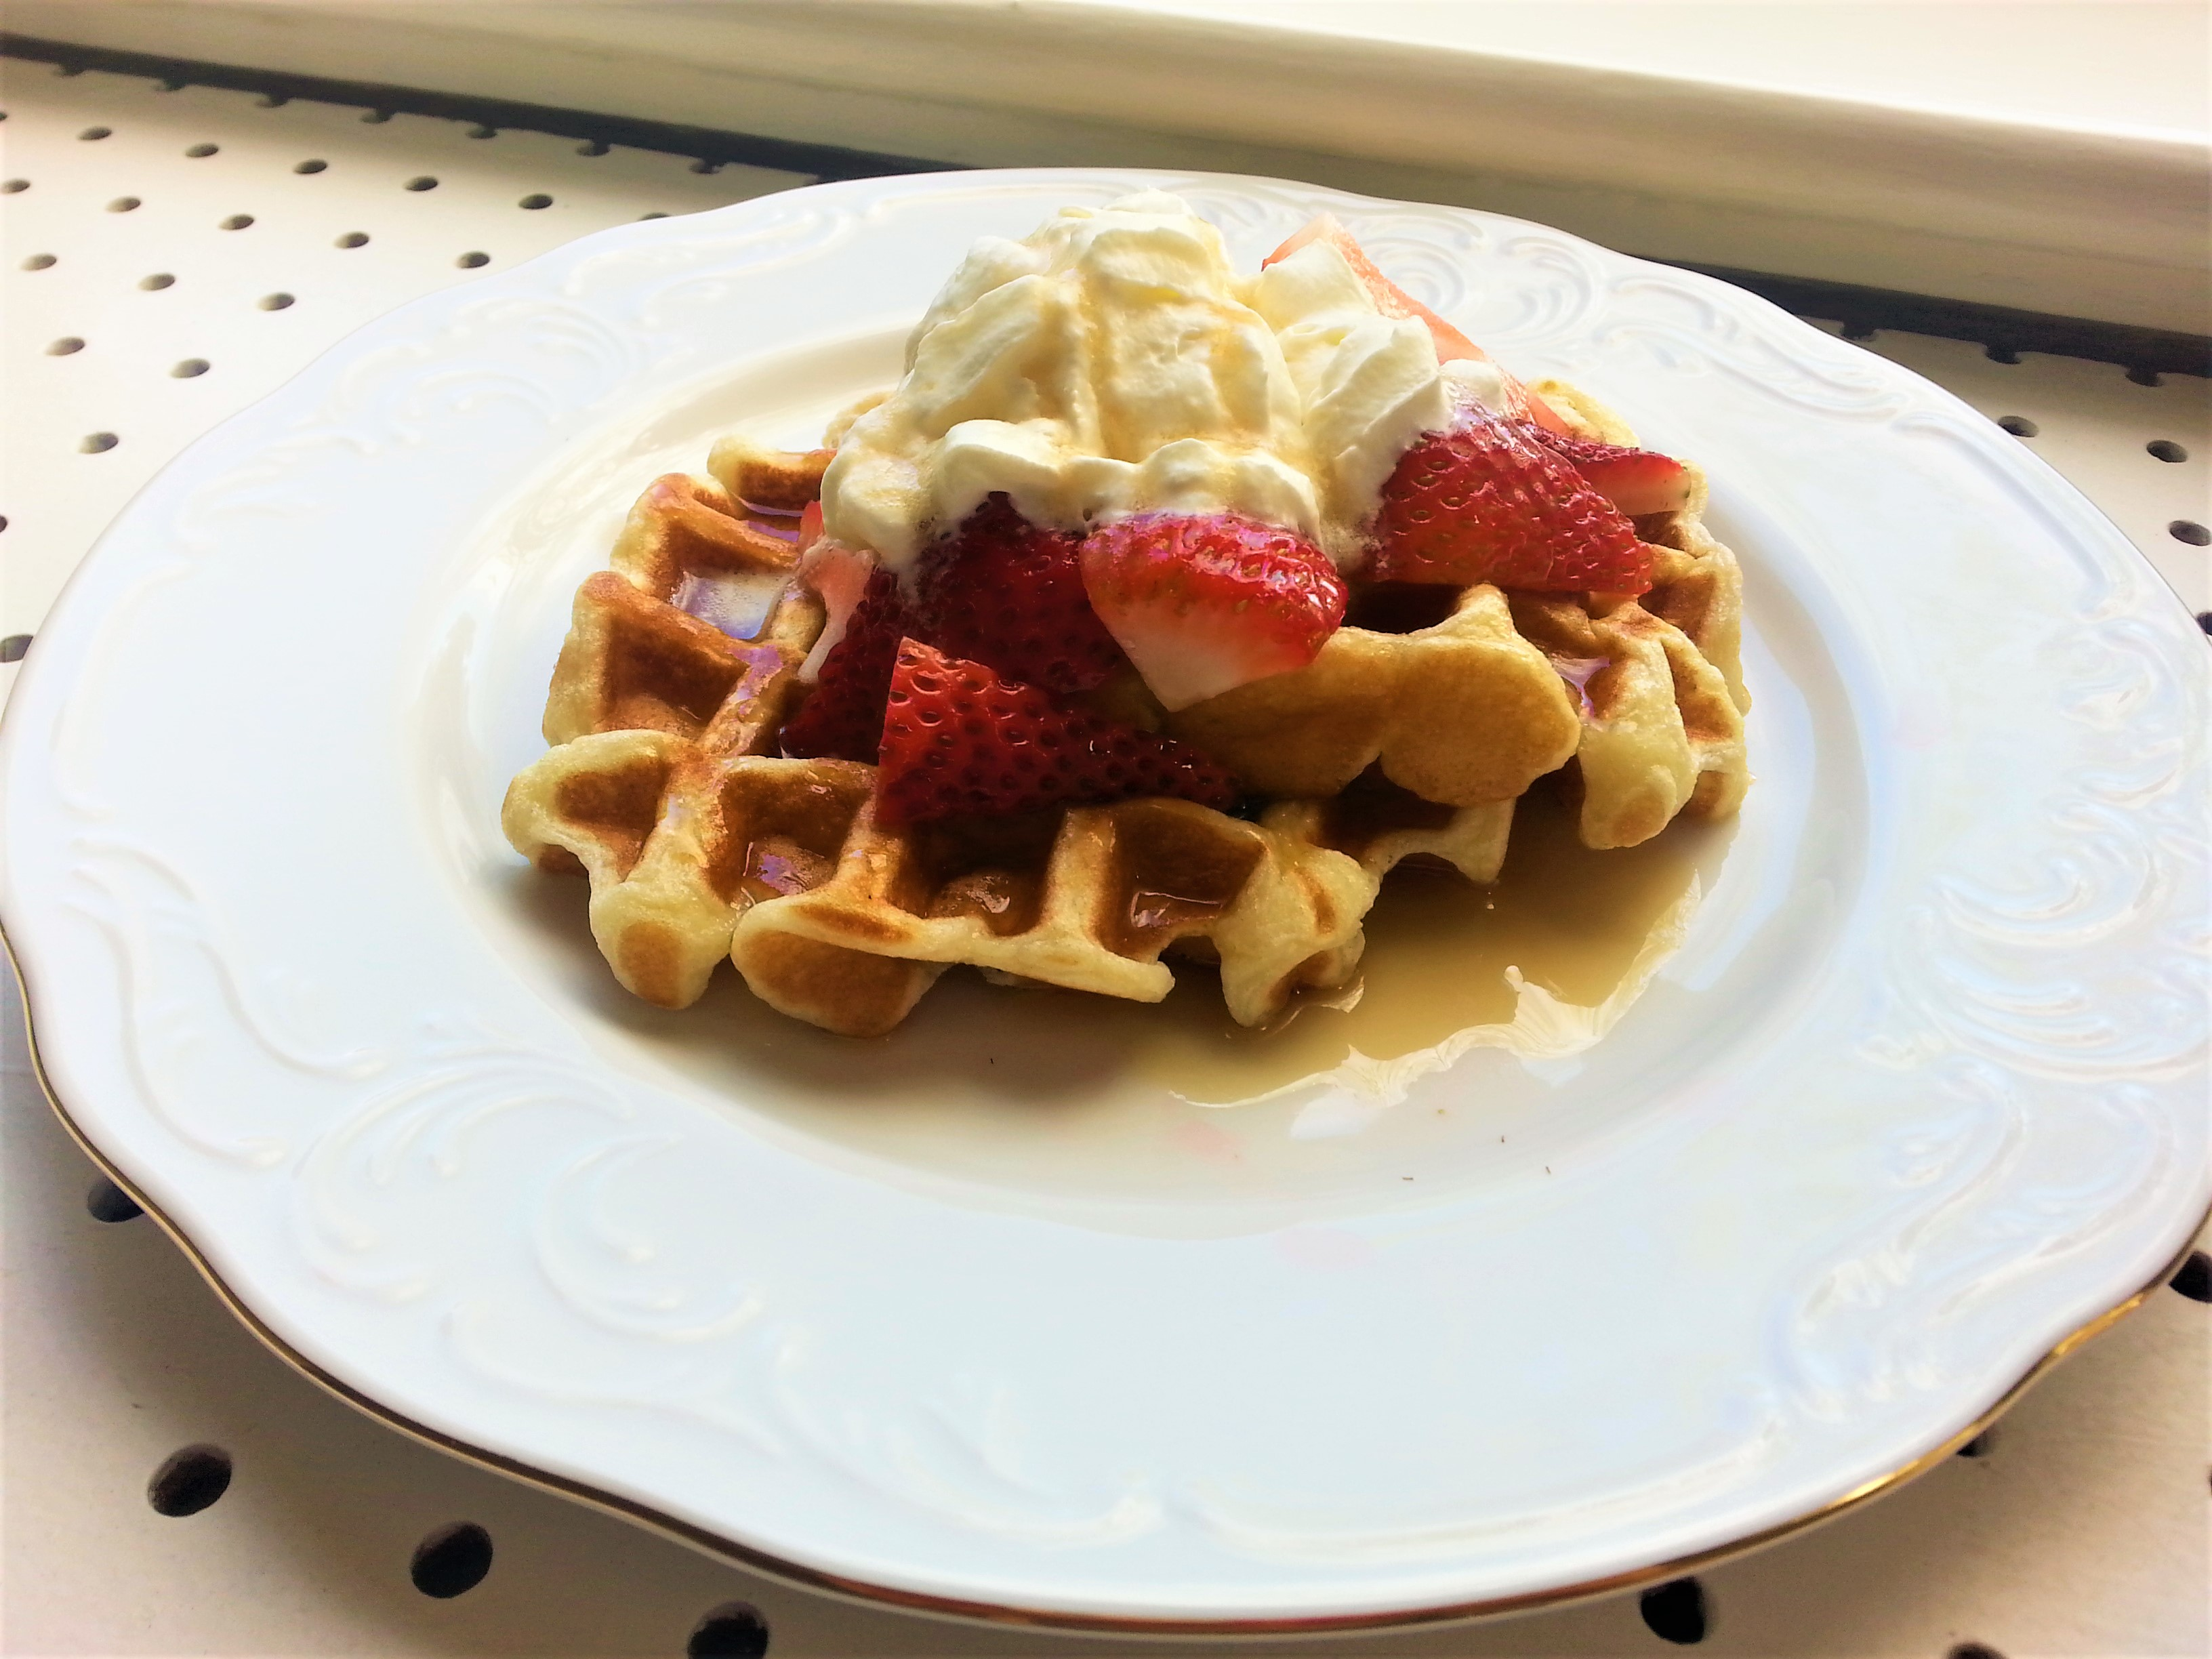 Waffles are Michelle's favourite!